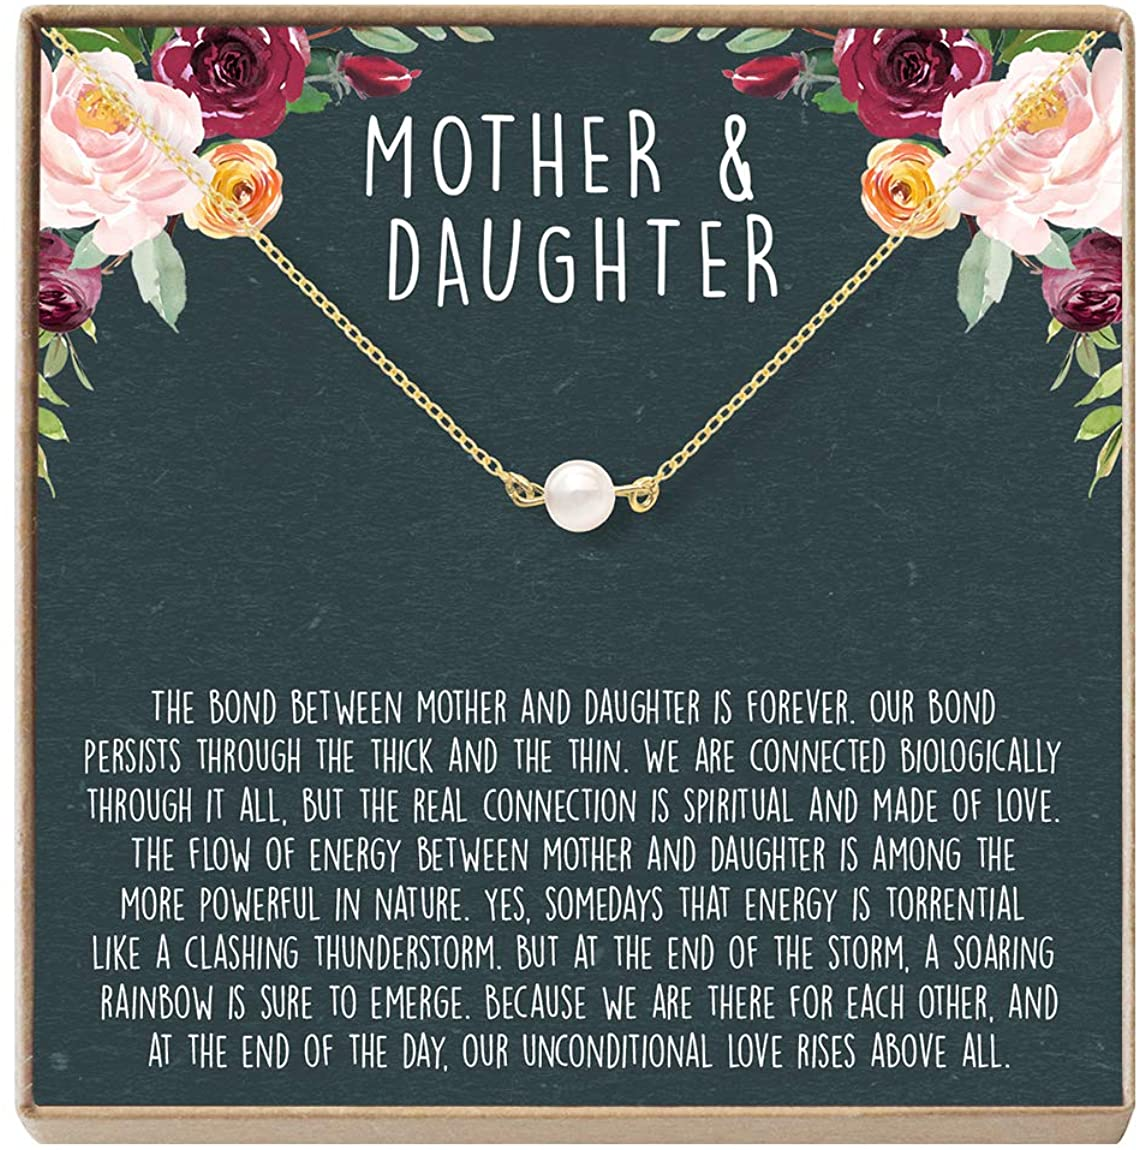 Mother & Daughter Necklace - Heartfelt Card & Jewelry Gift for Birthday, Holiday